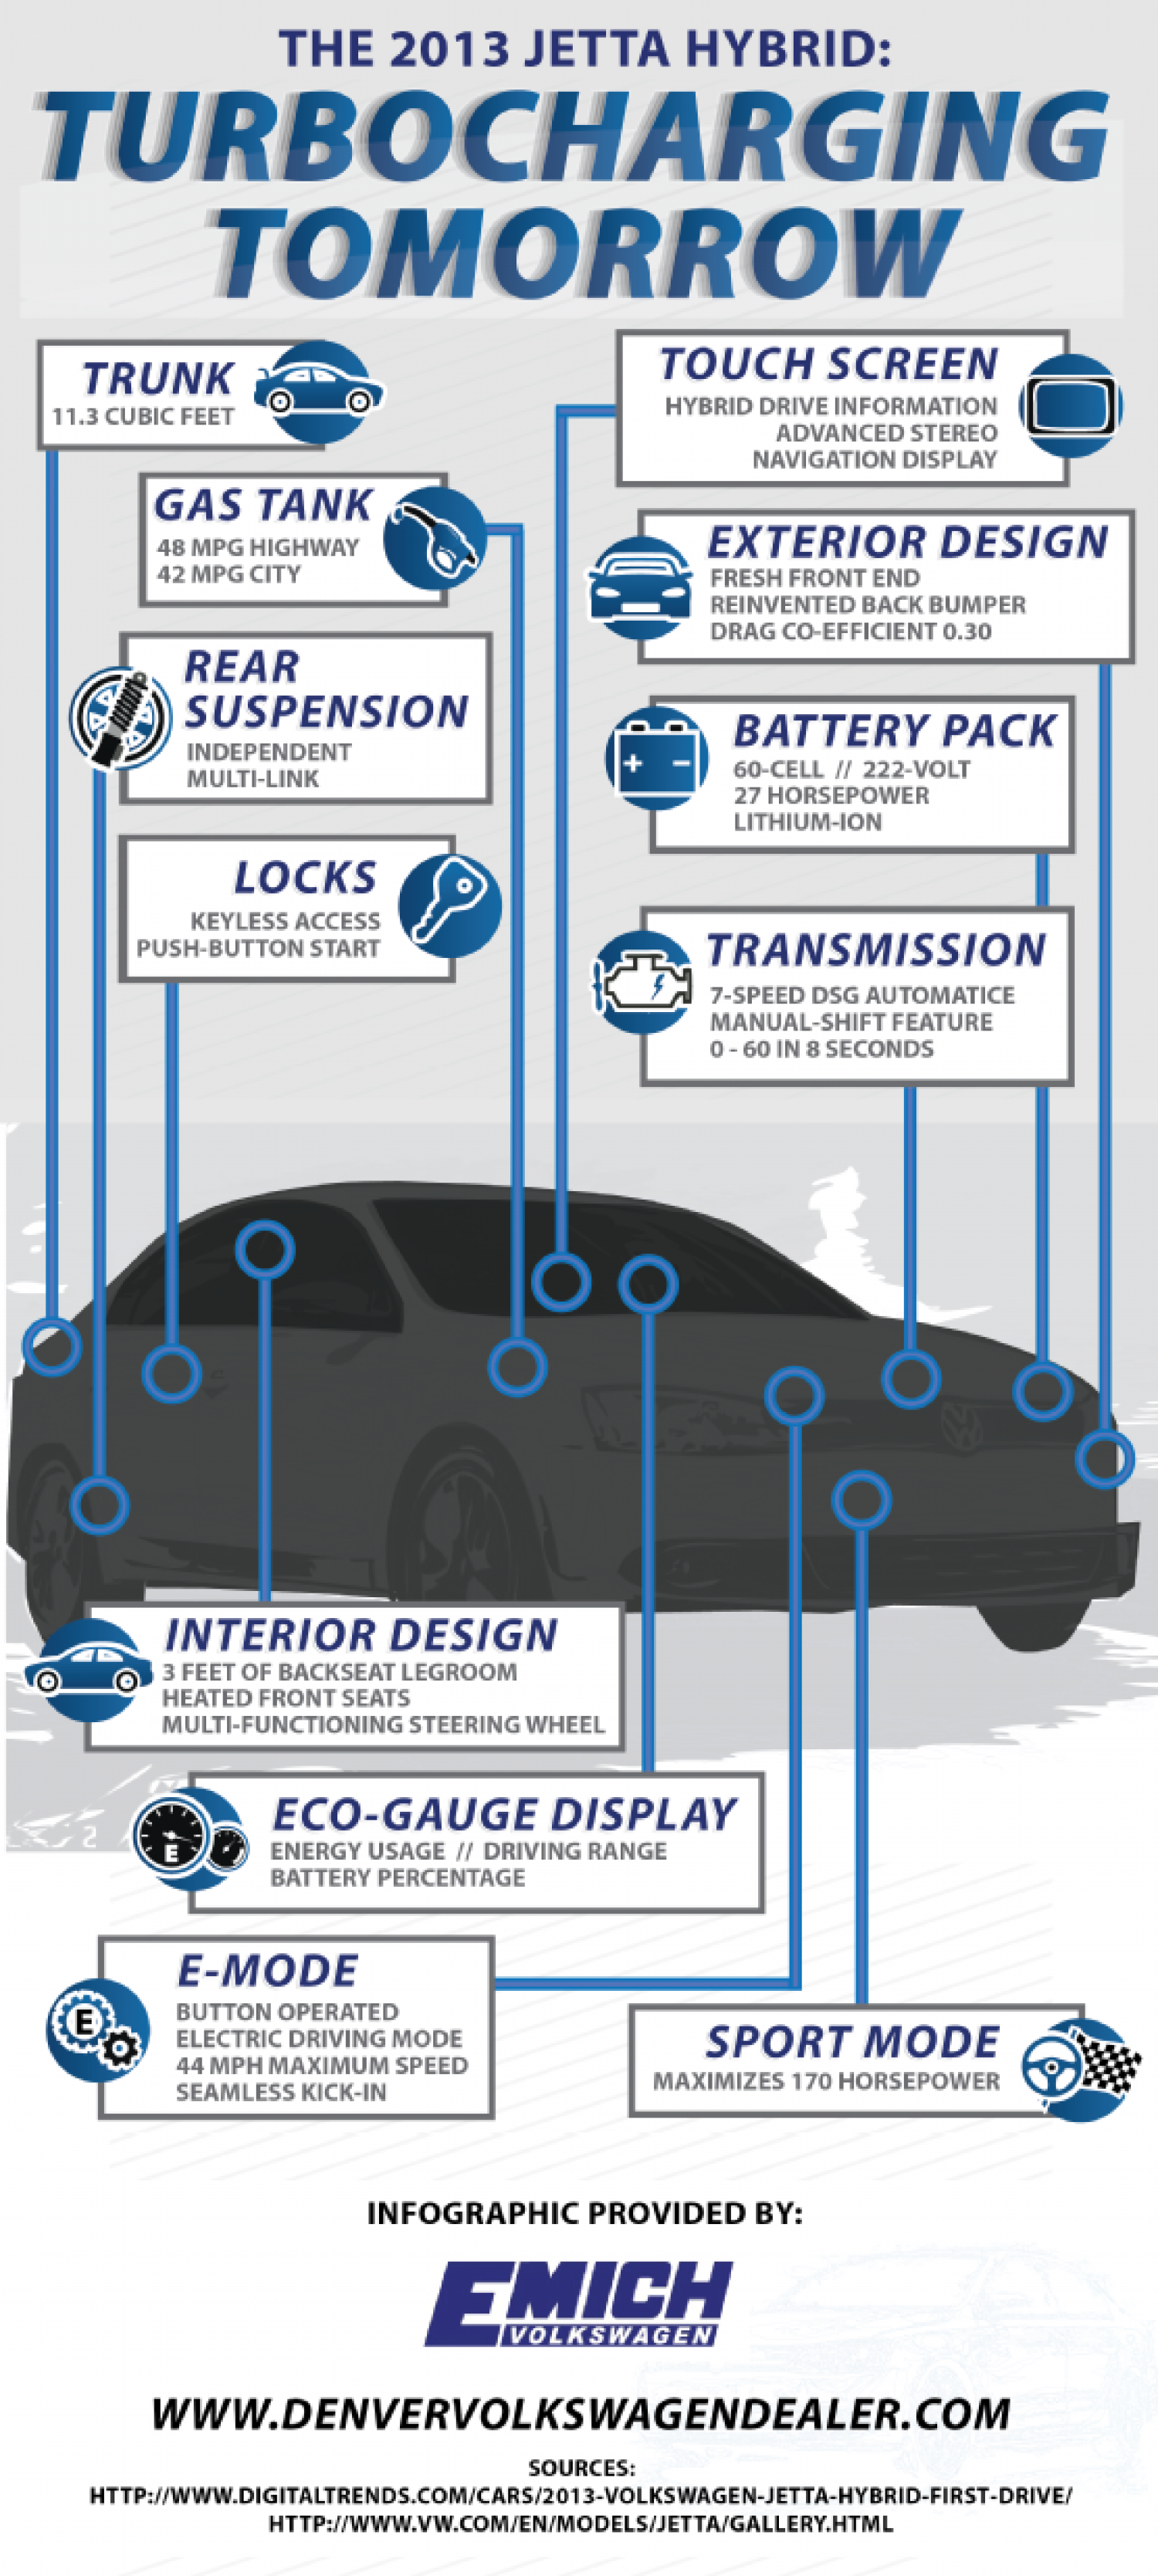 The 2013 Jetta Hybrid: Turbocharging Tomorrow  Infographic